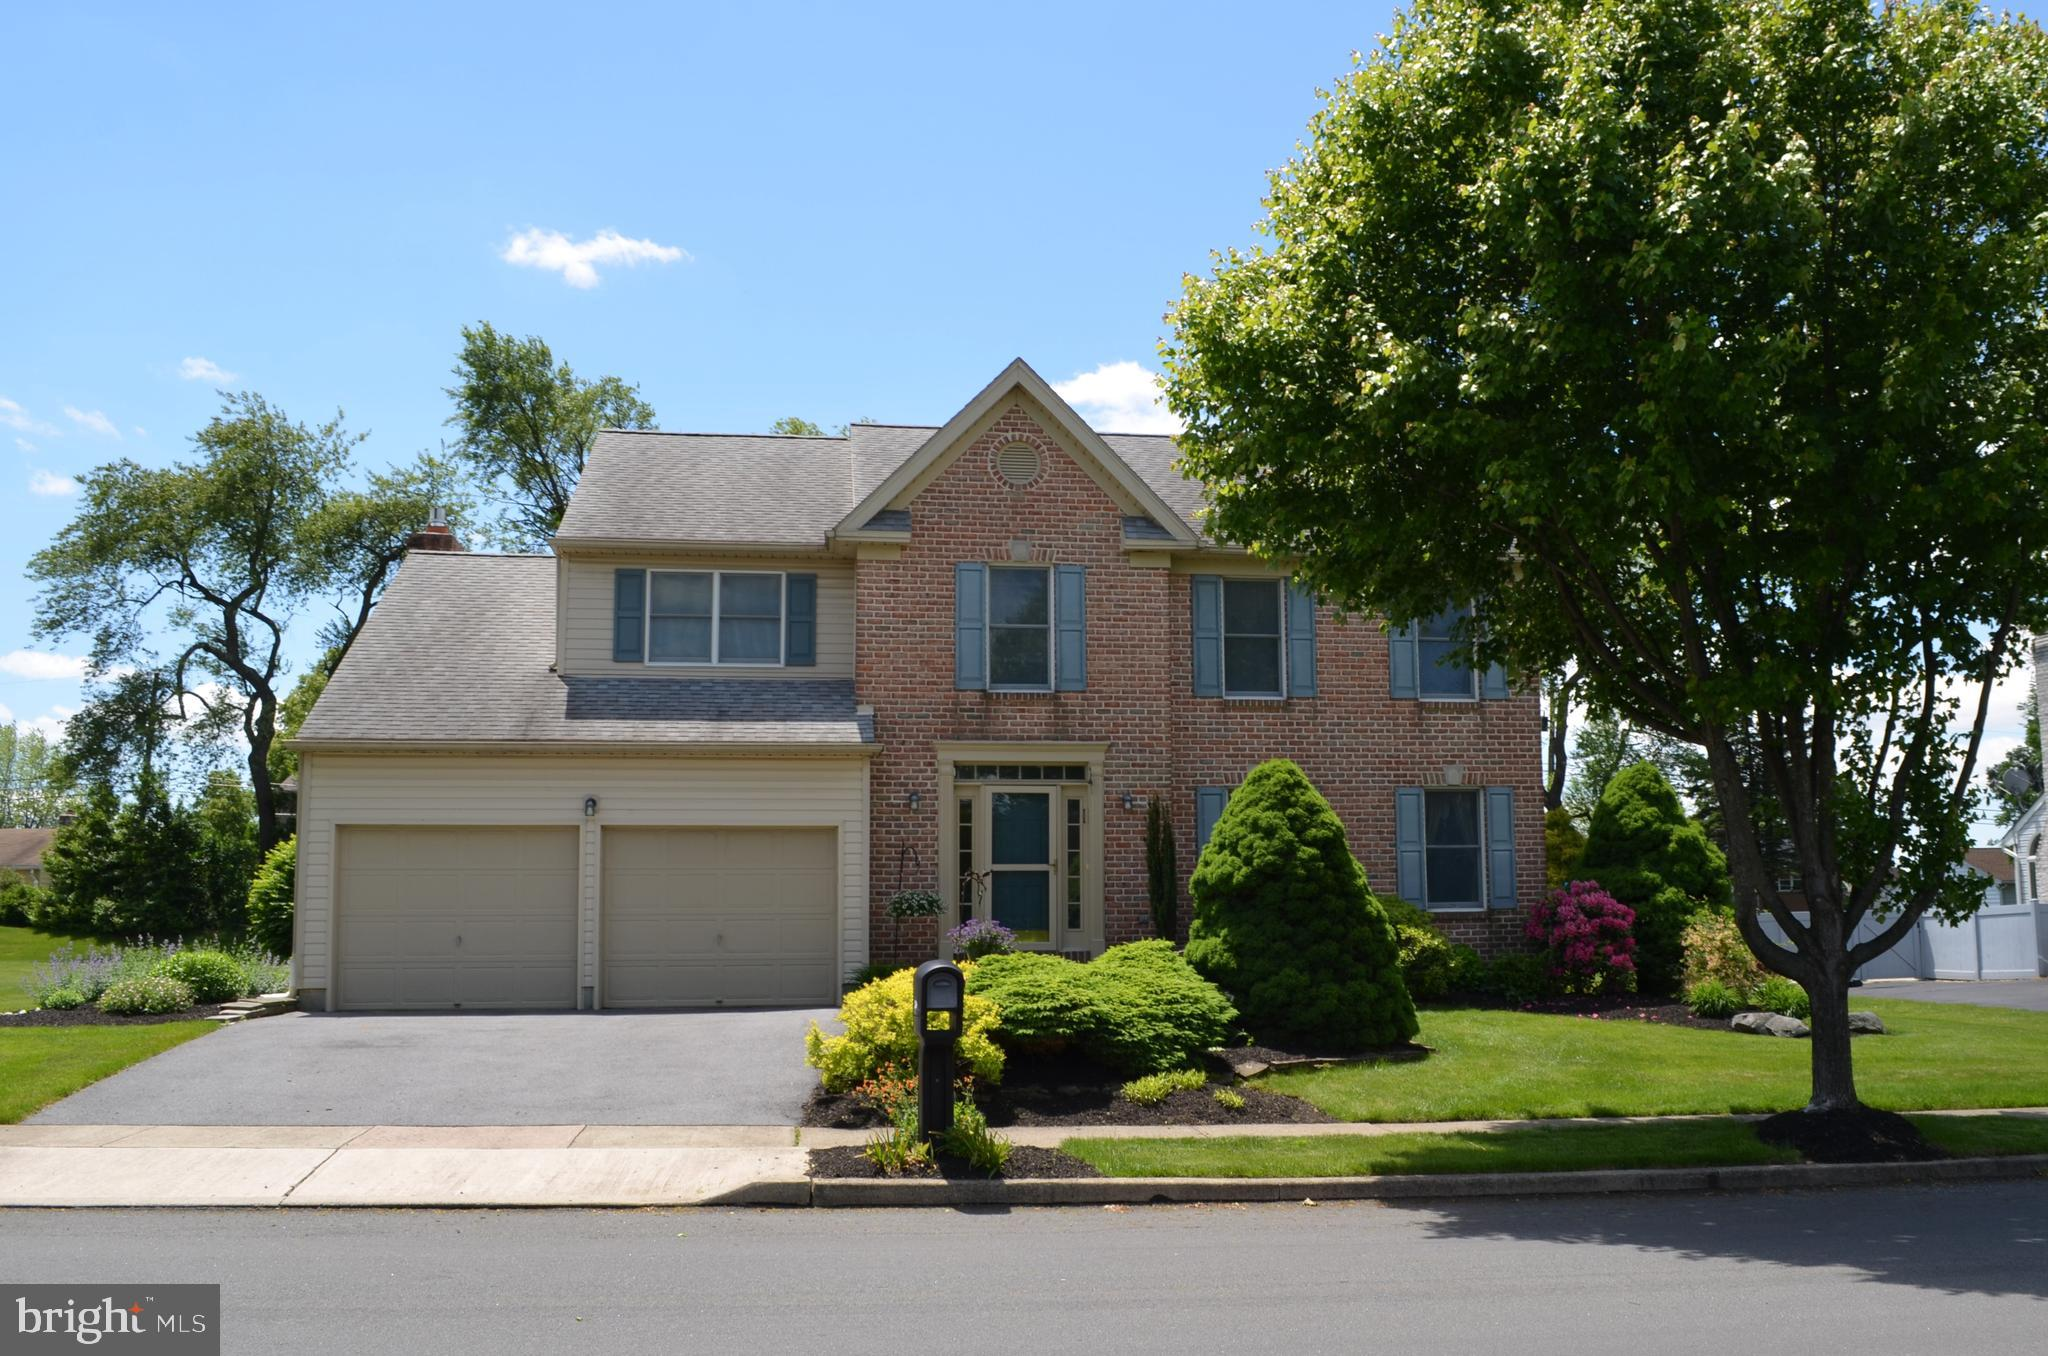 2206 GOLDENROD DRIVE, MACUNGIE, PA 18062